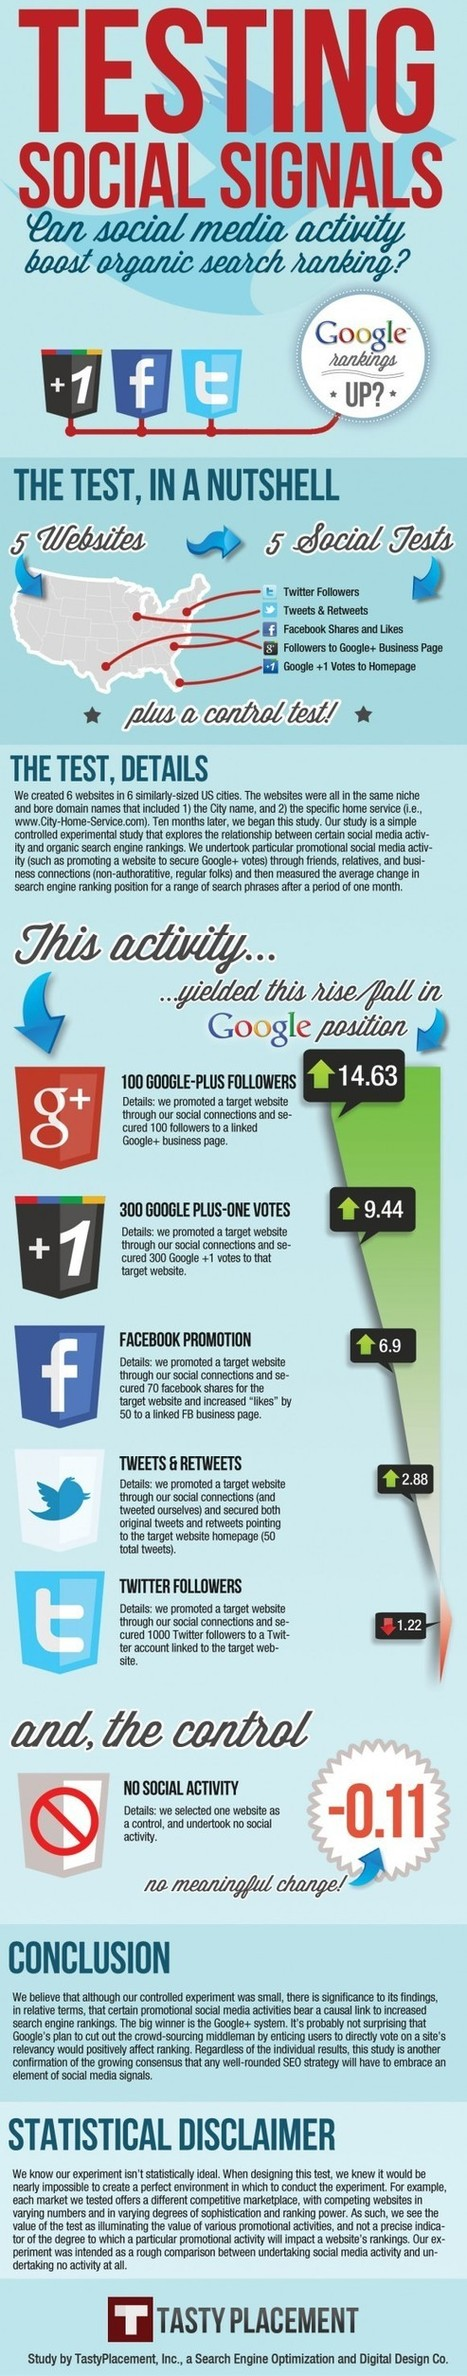 Testing Social Signals - Can Social Media Activity Boost Organic Search Ranking?   SEO and Social Media   Scoop.it